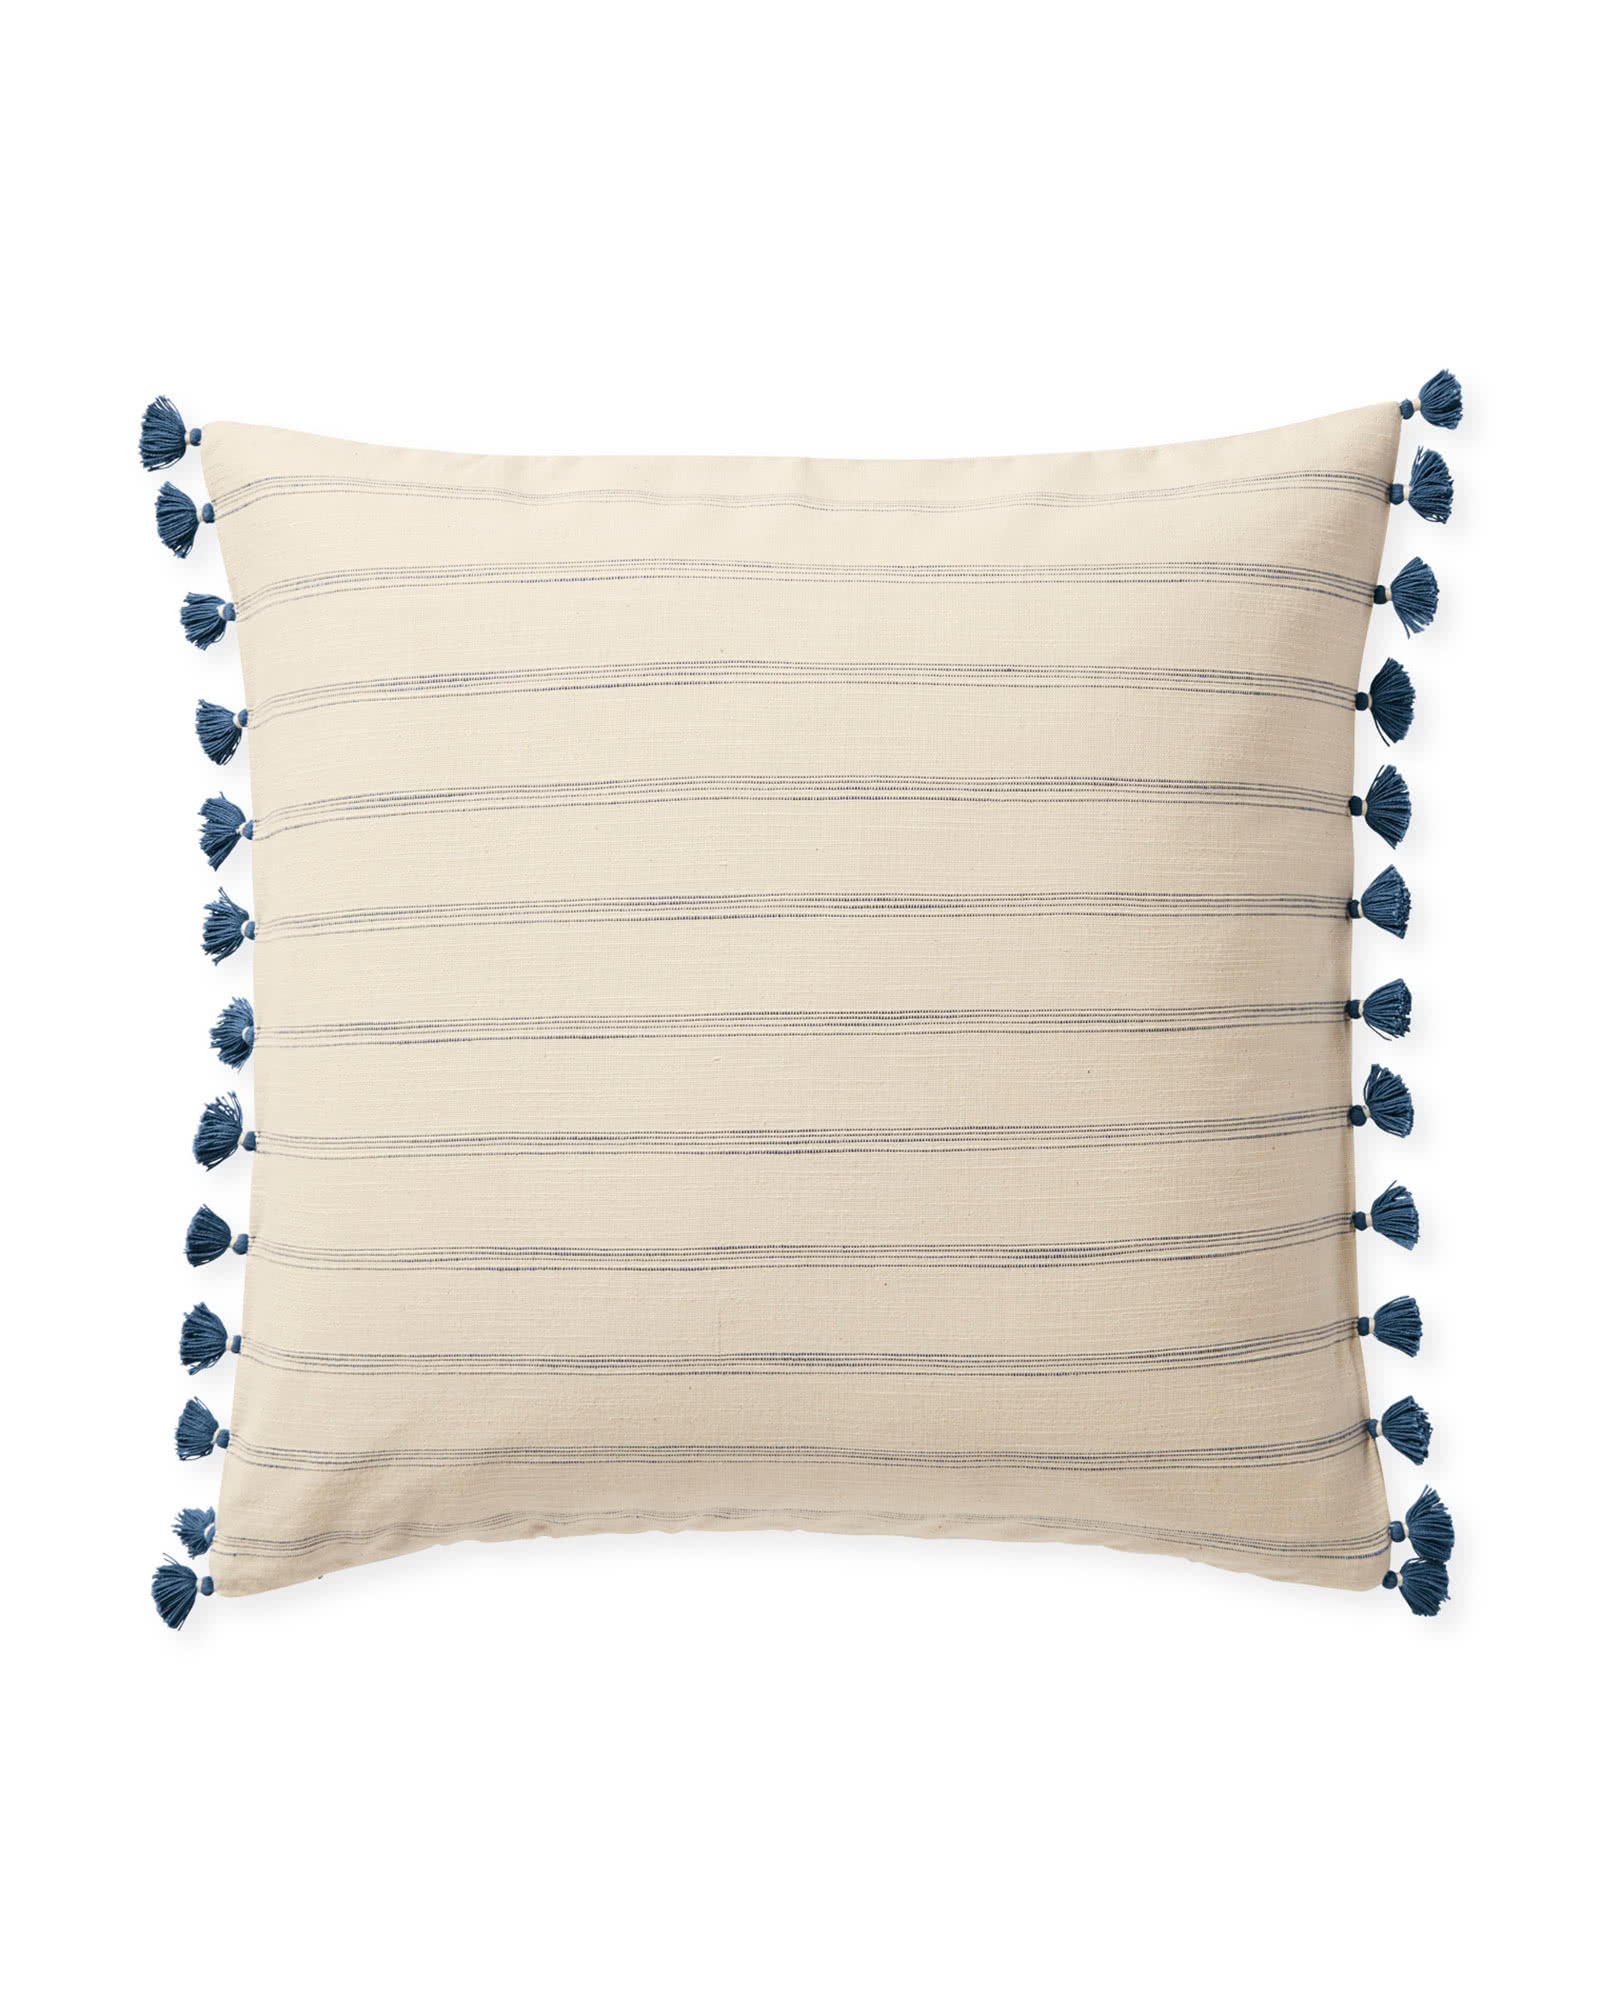 Alsworth Pillow Cover, Washed Indigo